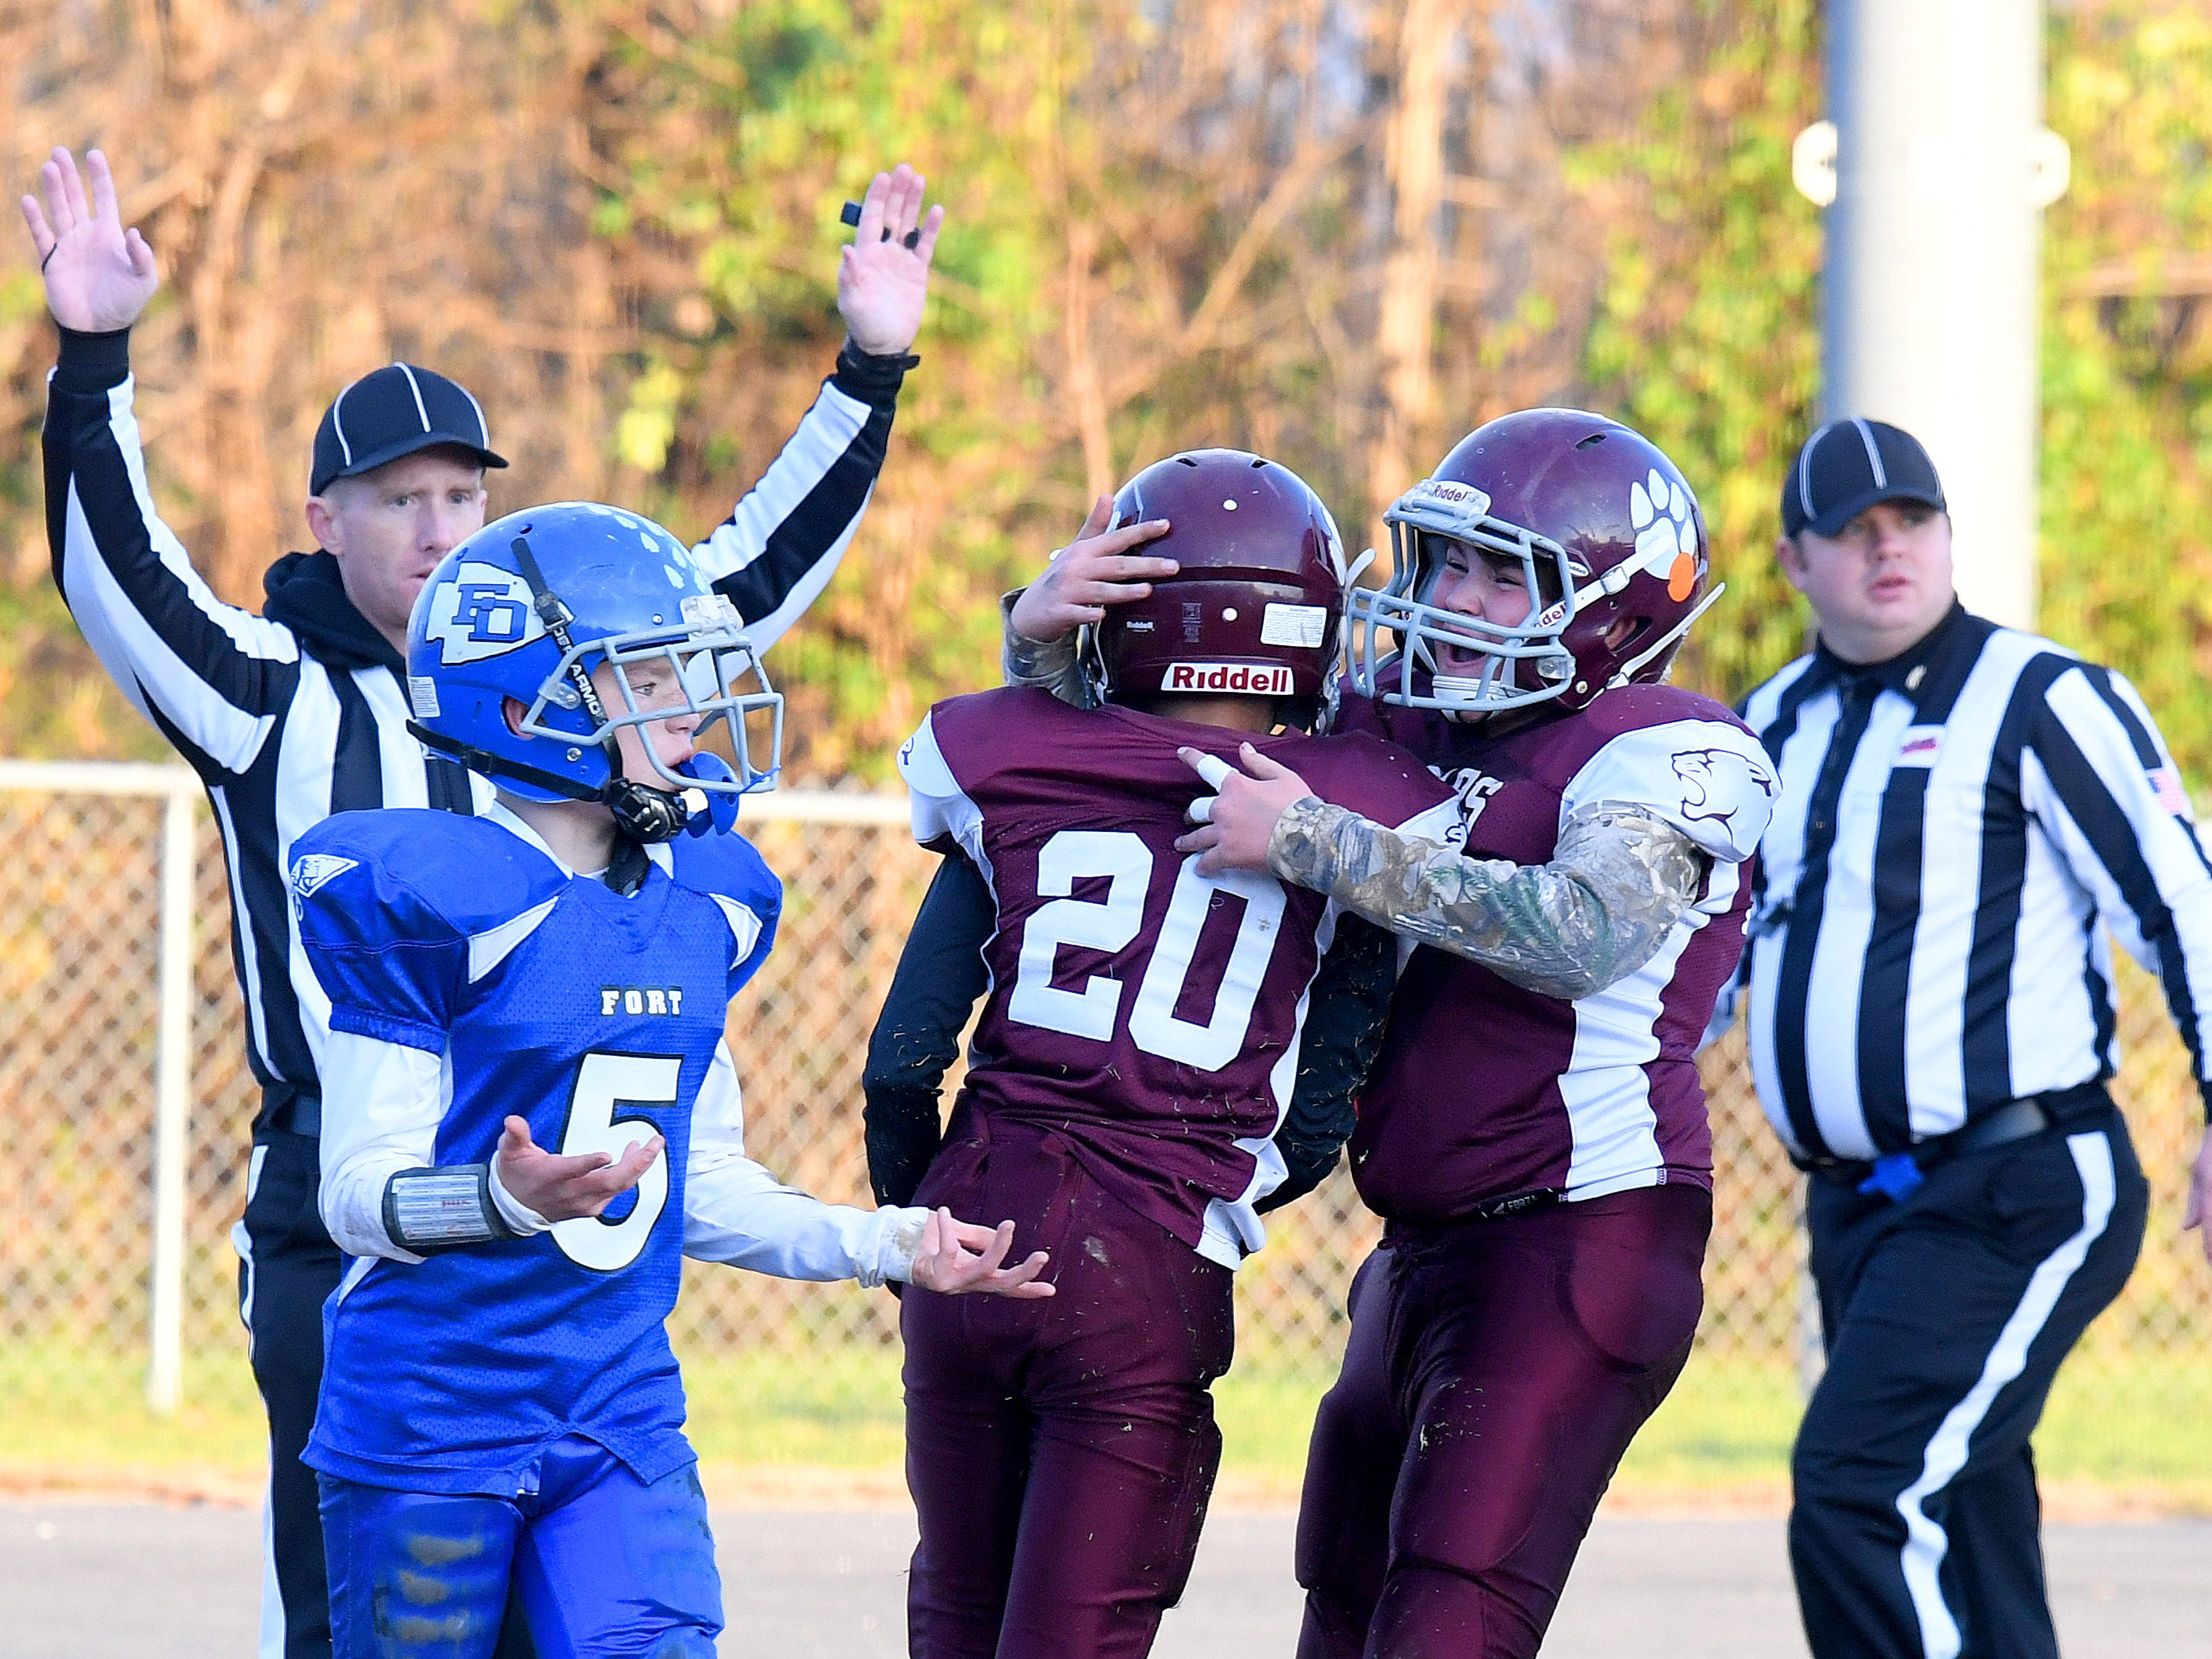 Stuarts Draft's Christopher Watkins (#20) is congratulated by a teammate after he caught the ball for a first down during the Augusta County Quarterback Club Juniors Super Bowl in Fishersville on Sunday, Nov. 11, 2018.  Fort Defiance beats Stuarts Draft, 13-12.